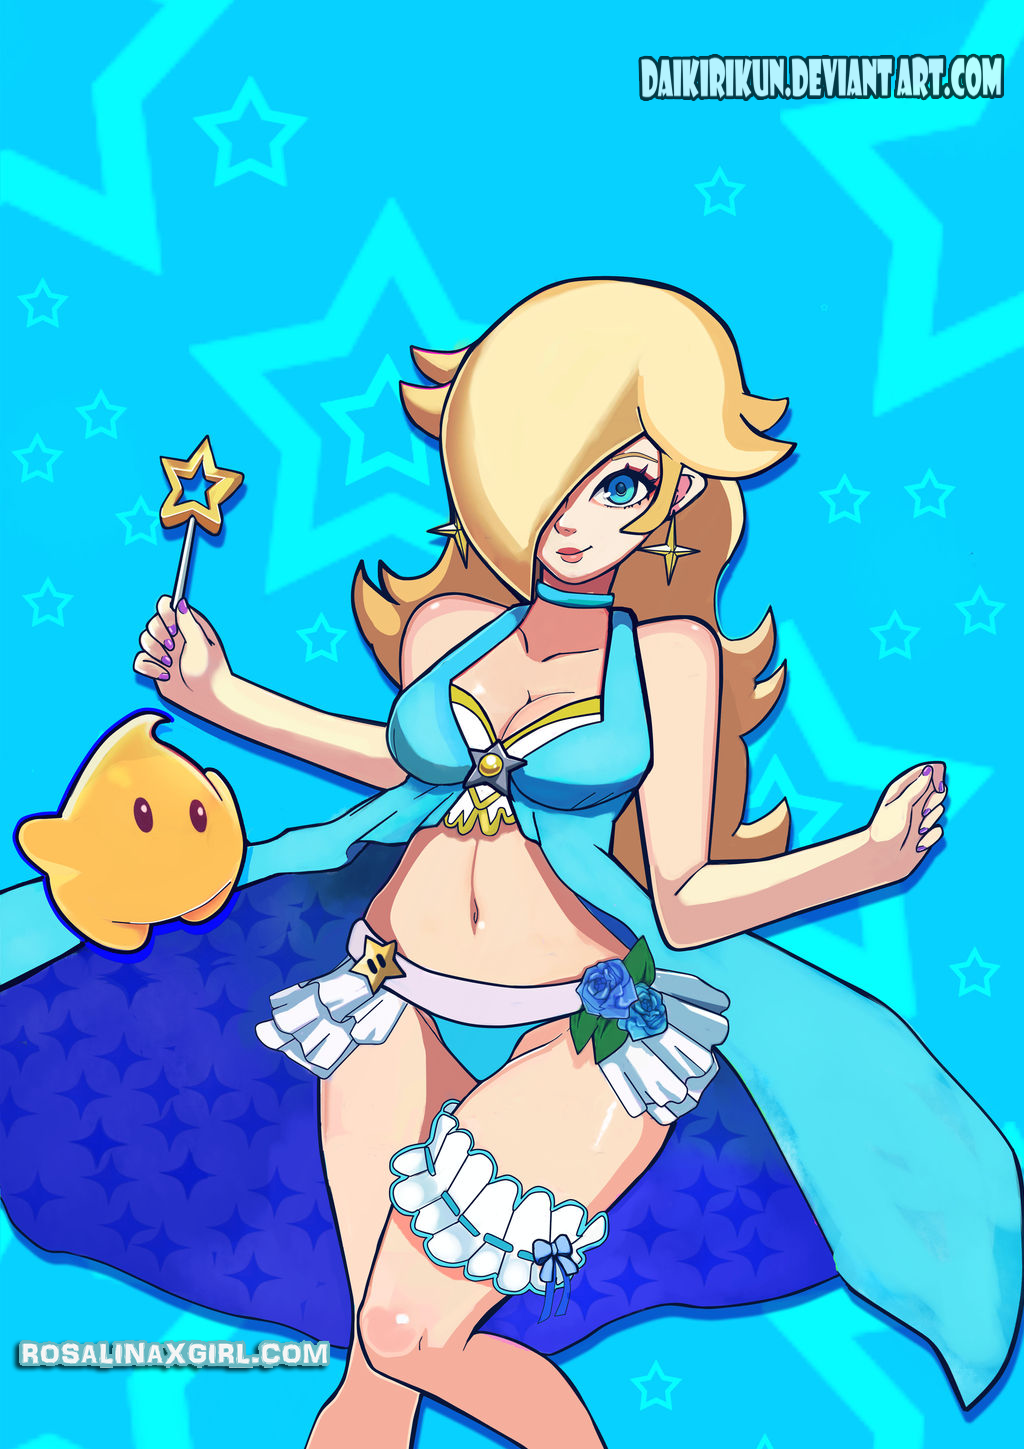 nintendo mario princess rosalina luma cute swimsuit remake alternative